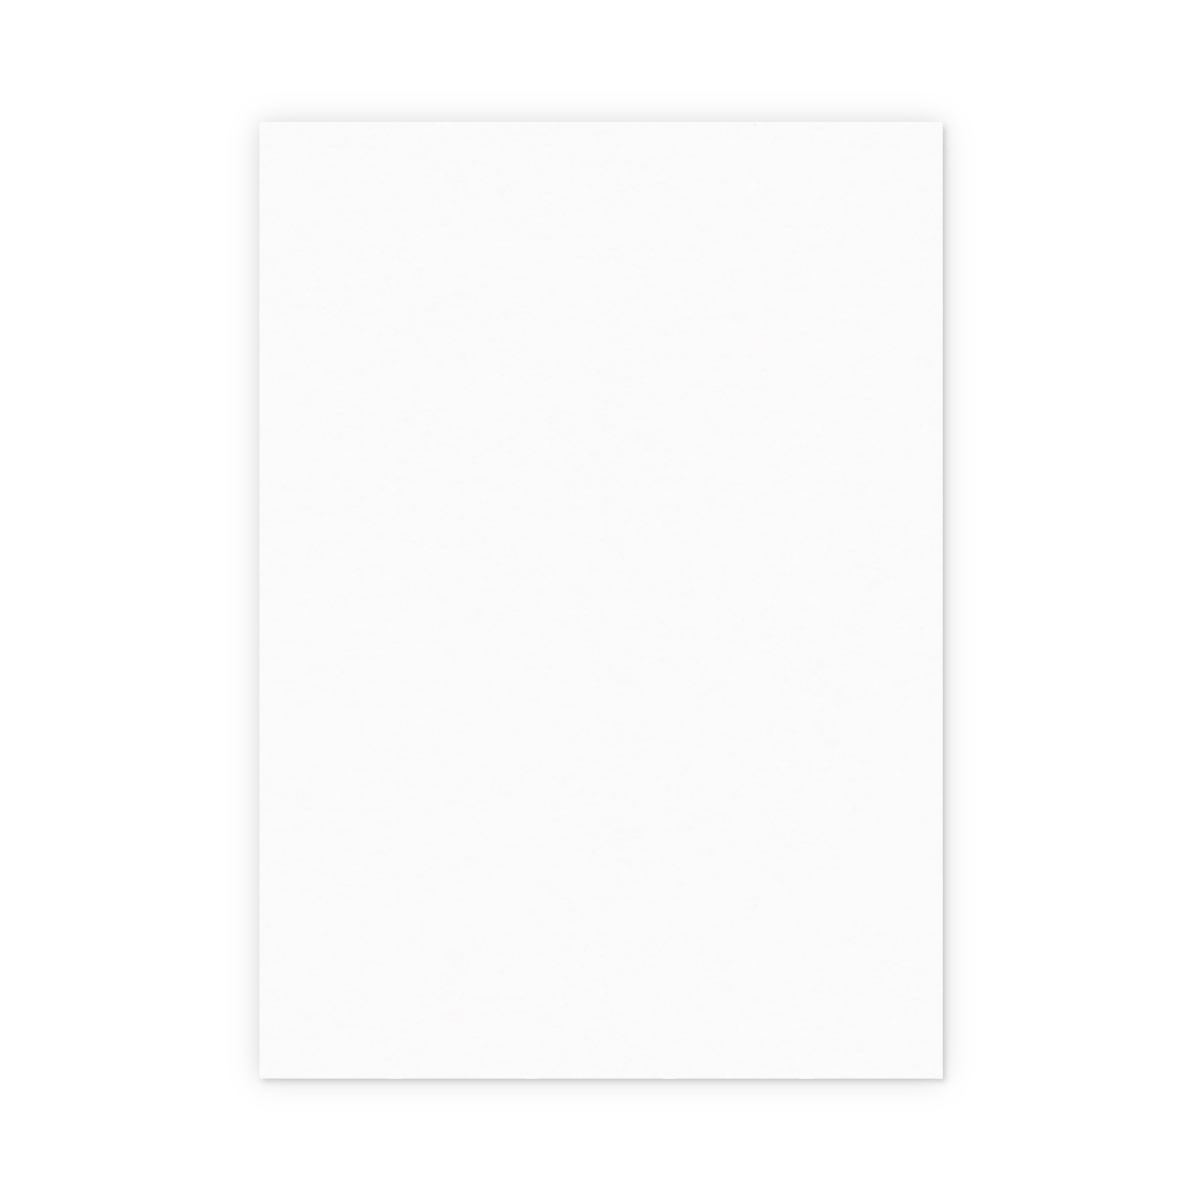 Https%3a%2f%2fwww.papier.com%2fproduct image%2f69296%2f4%2fclassic ampersand 16370 rueckseite 1552909965.png?ixlib=rb 1.1